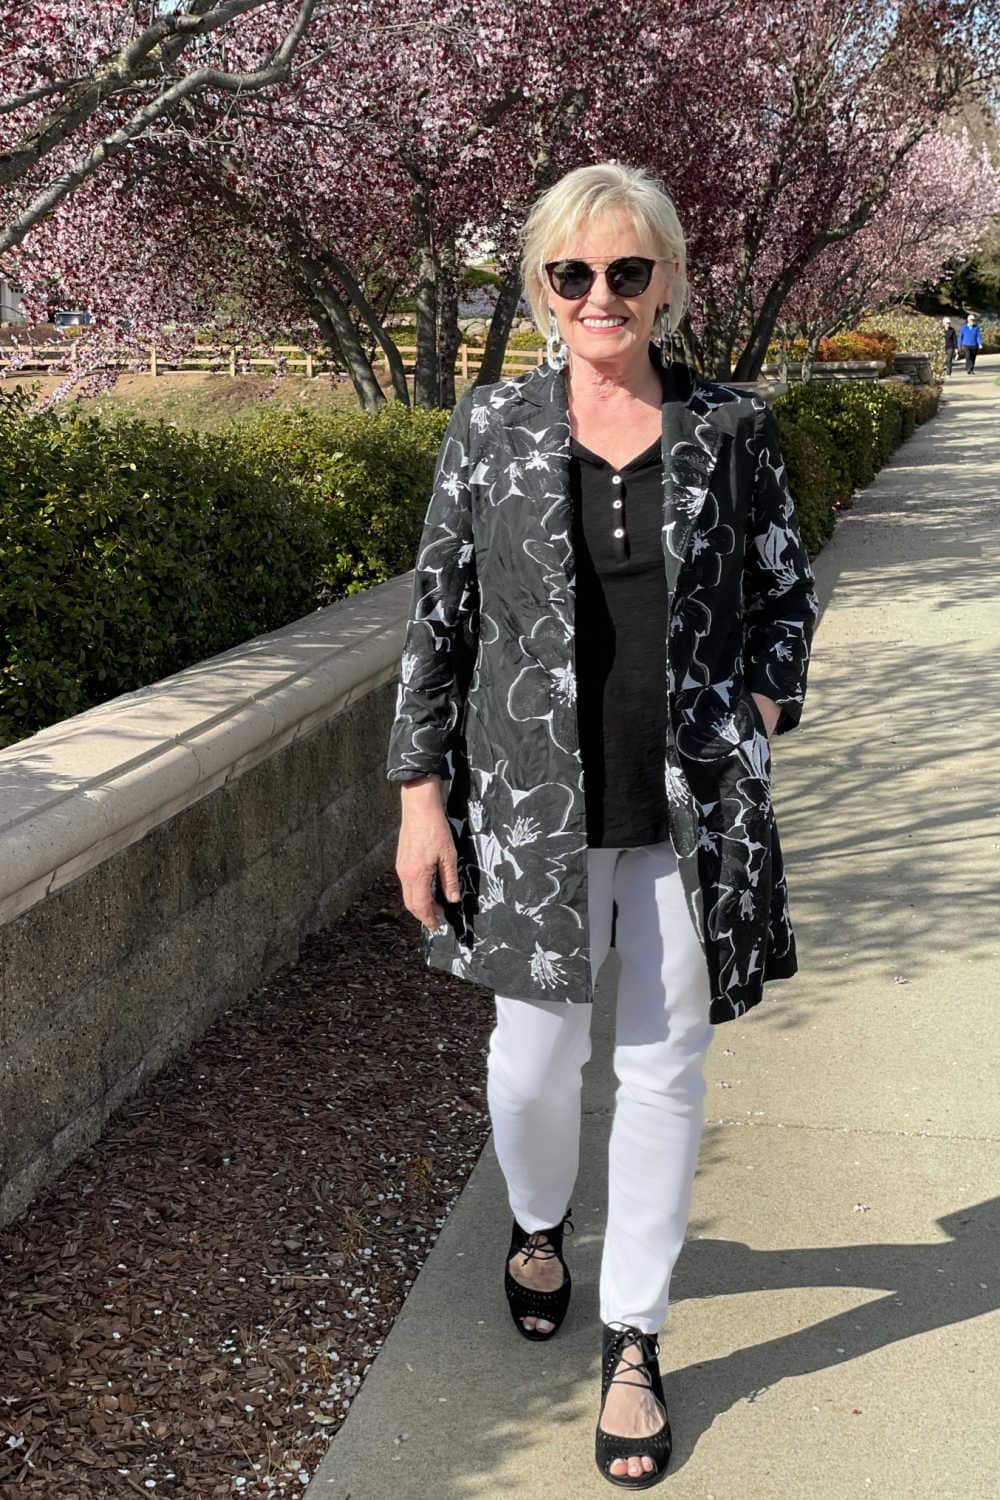 woman wearing white jeans and black top with black and white jacket